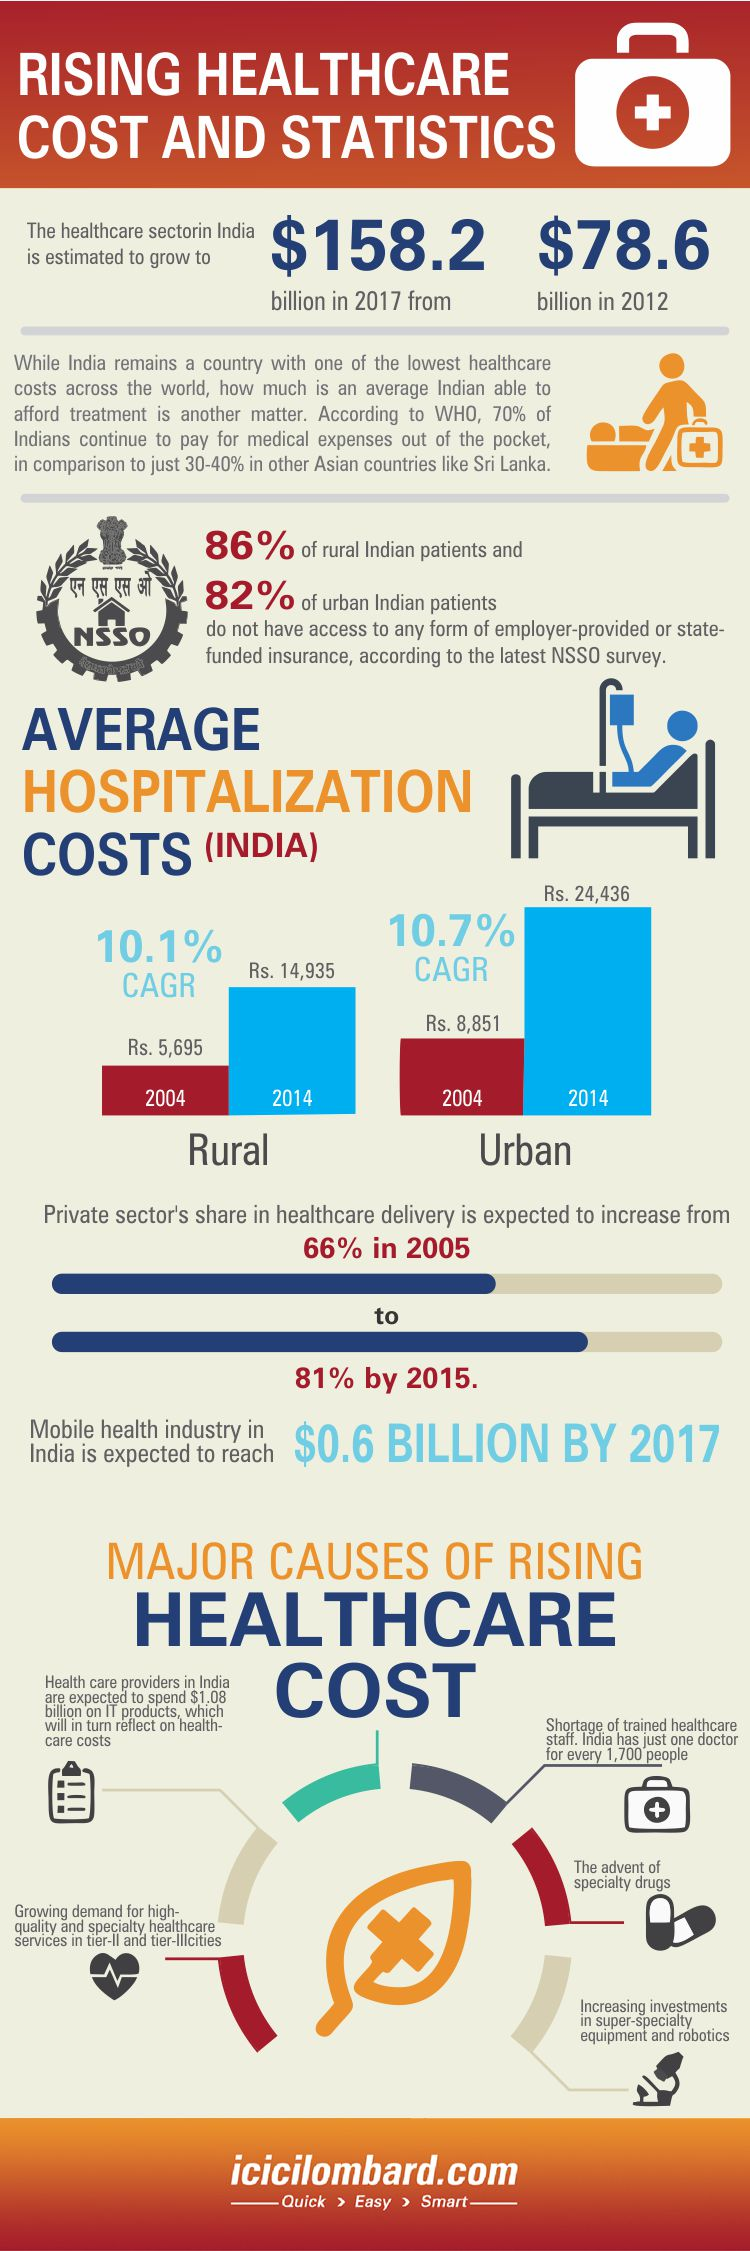 Rising Healthcare Cost and Statistics